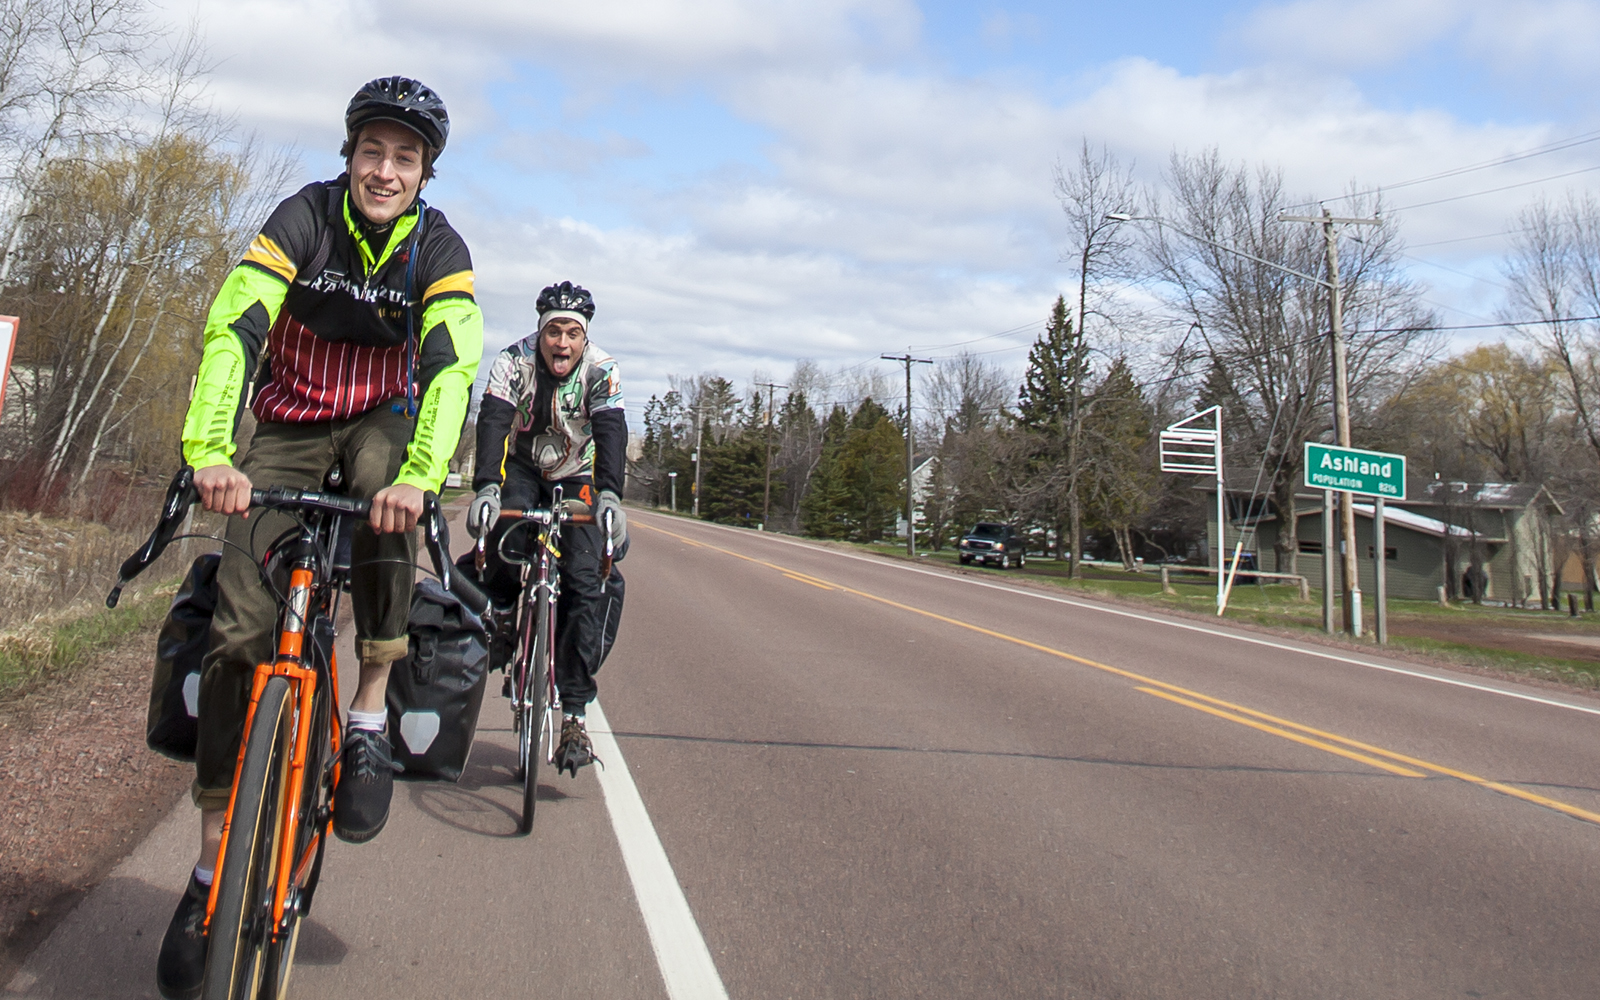 Hal Welch and Patrick Shea ride outside of Ashland.